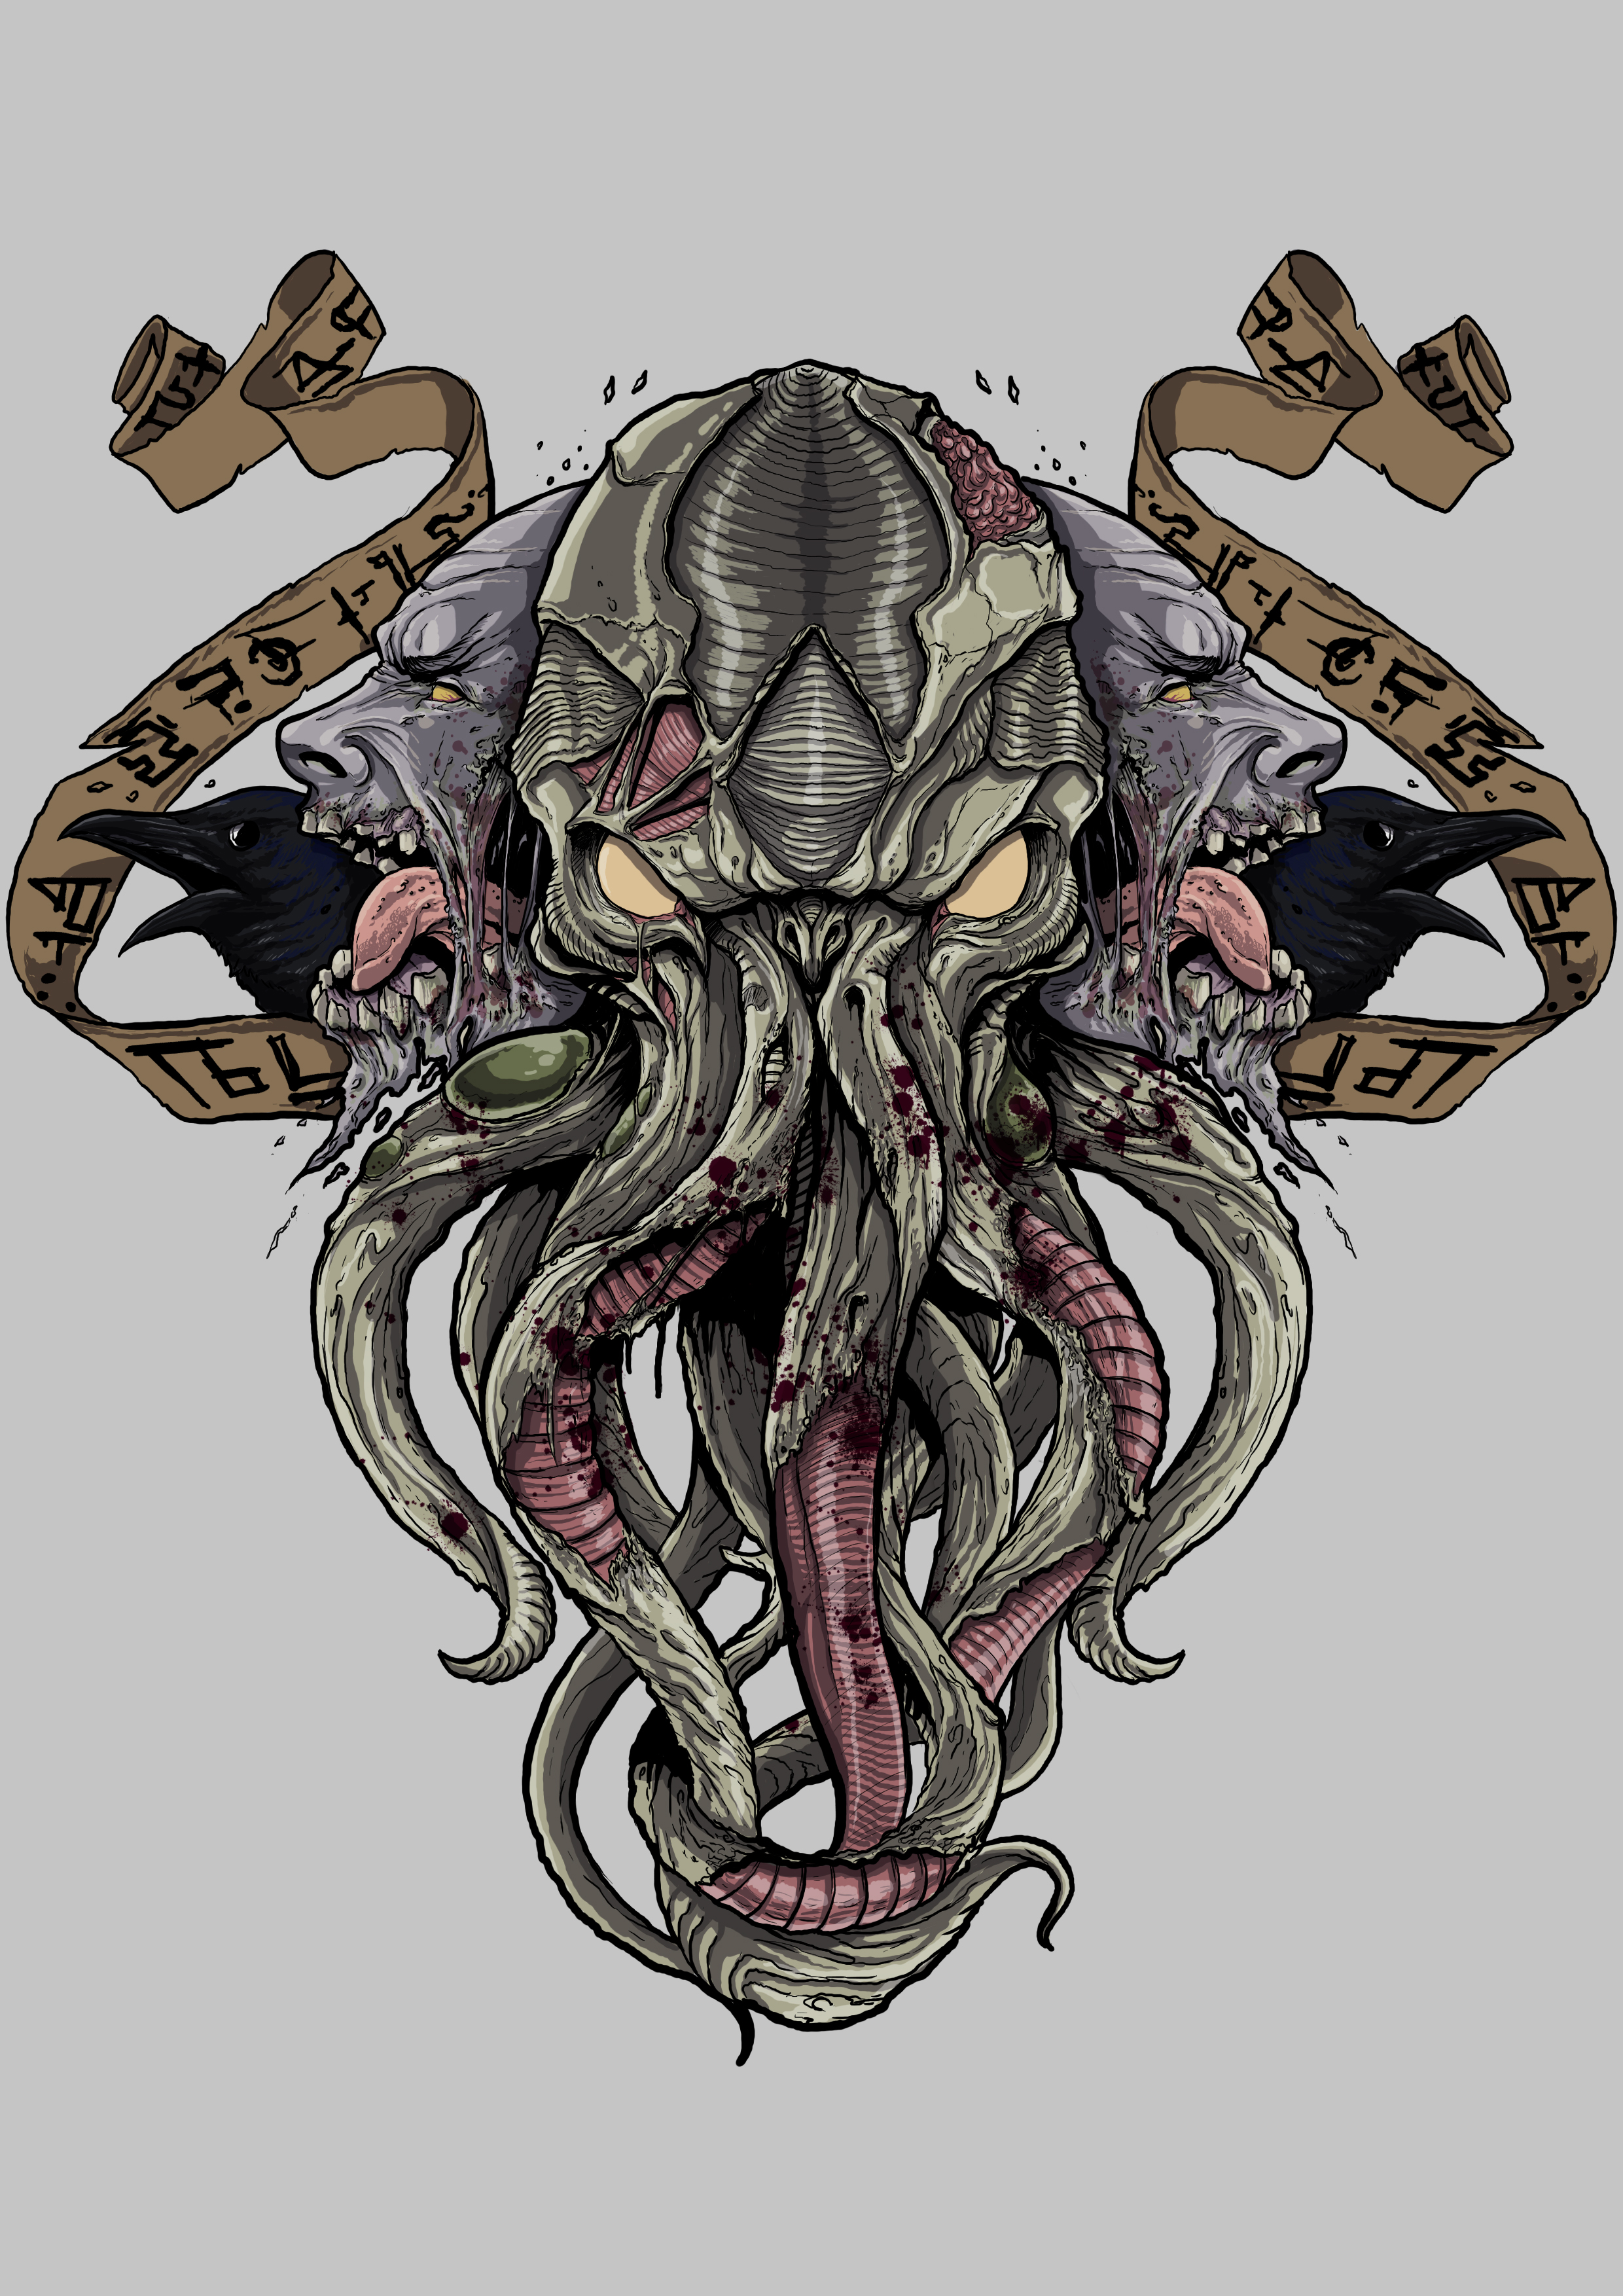 Undead Cthulhu